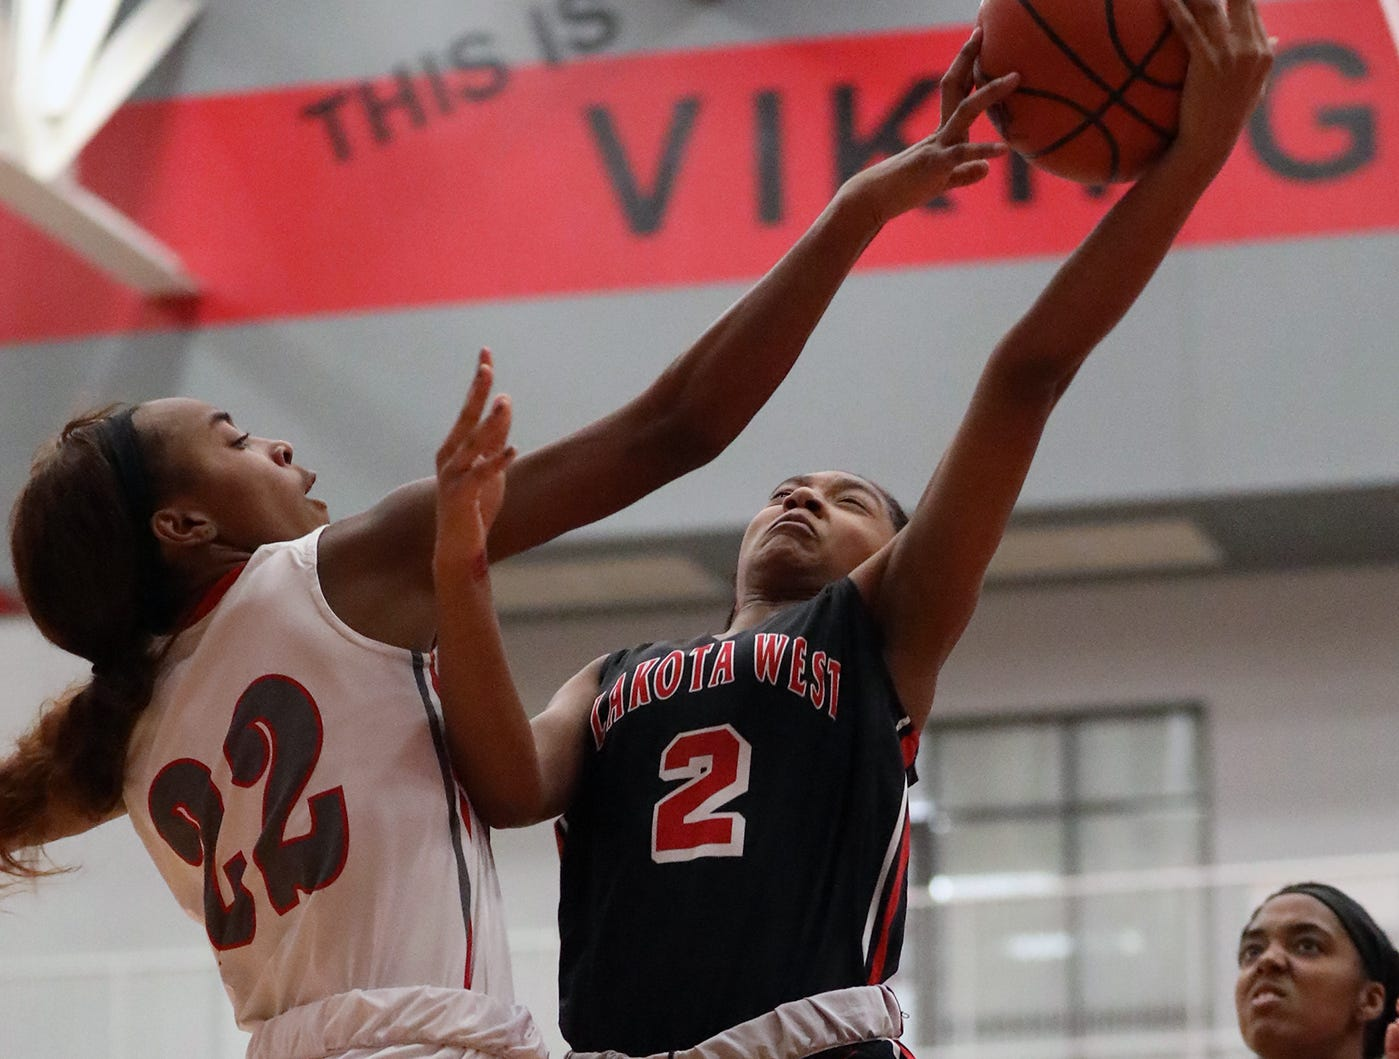 Lakota West  guard Chance Gray (2) drives to the basket against Princeton forward Jacquelyn Hinessmon during their basketball game, Wednesday, Jan.16,2019.